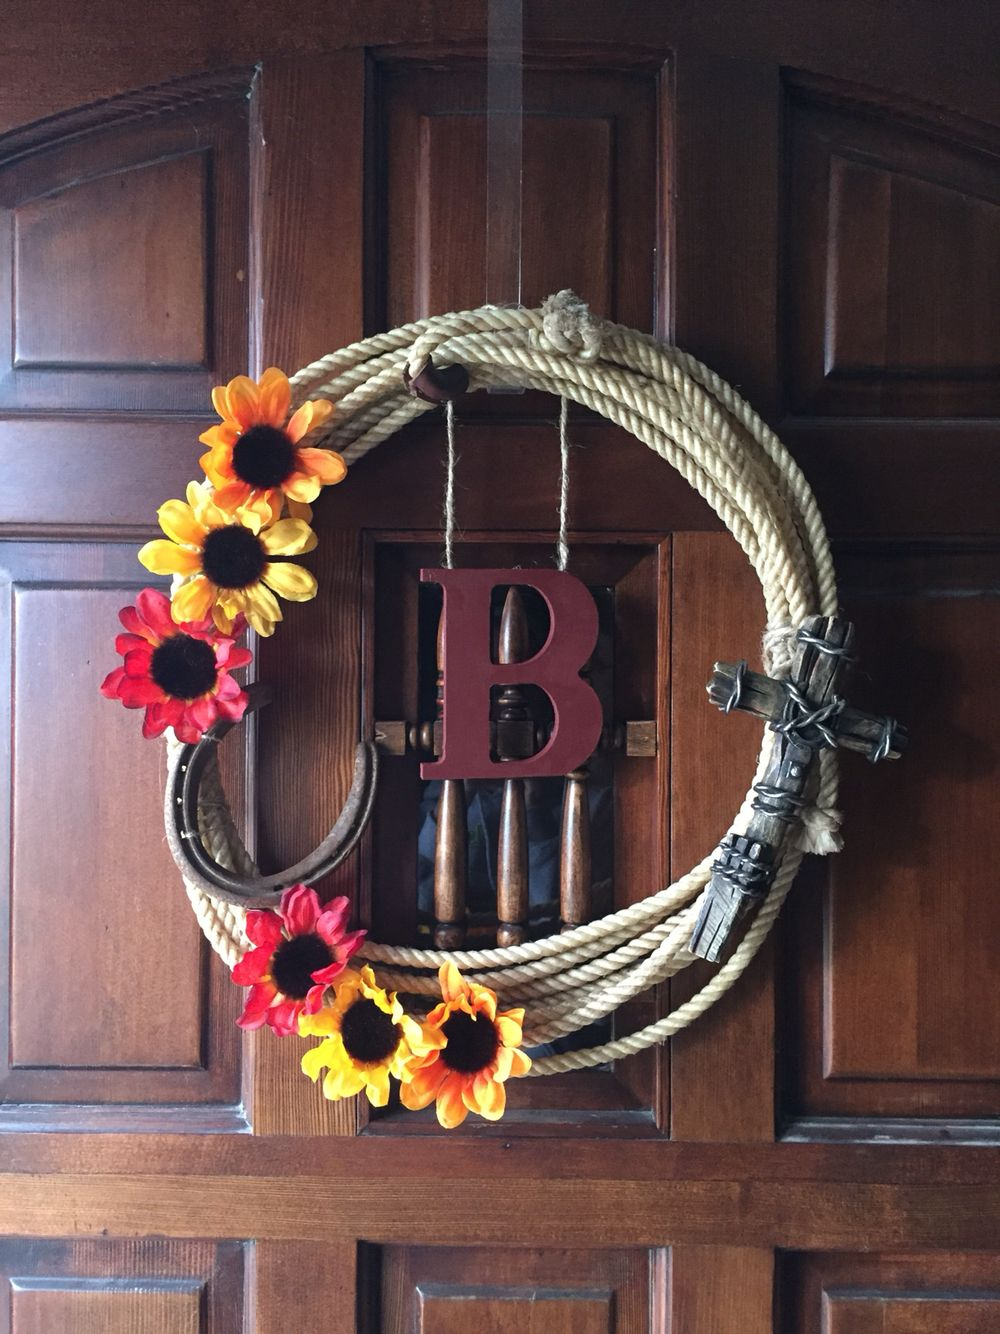 Lasso wreath DIY western decor | A Happy Home in 2019 ...